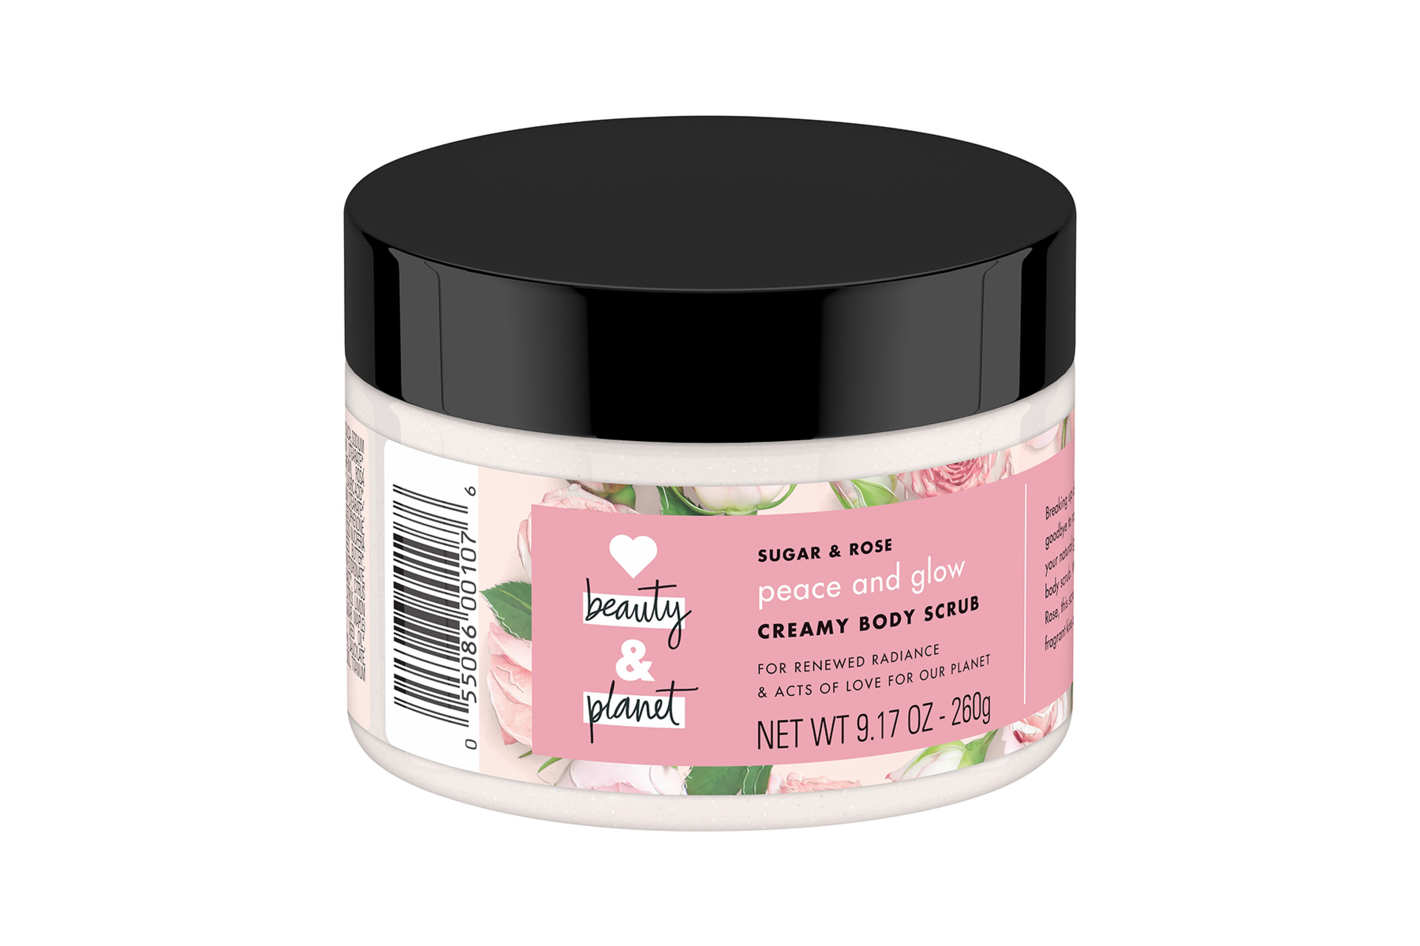 Love Beauty and Planet Sugar and Rose Scrub Peace and Glow Creamy Body Scrub